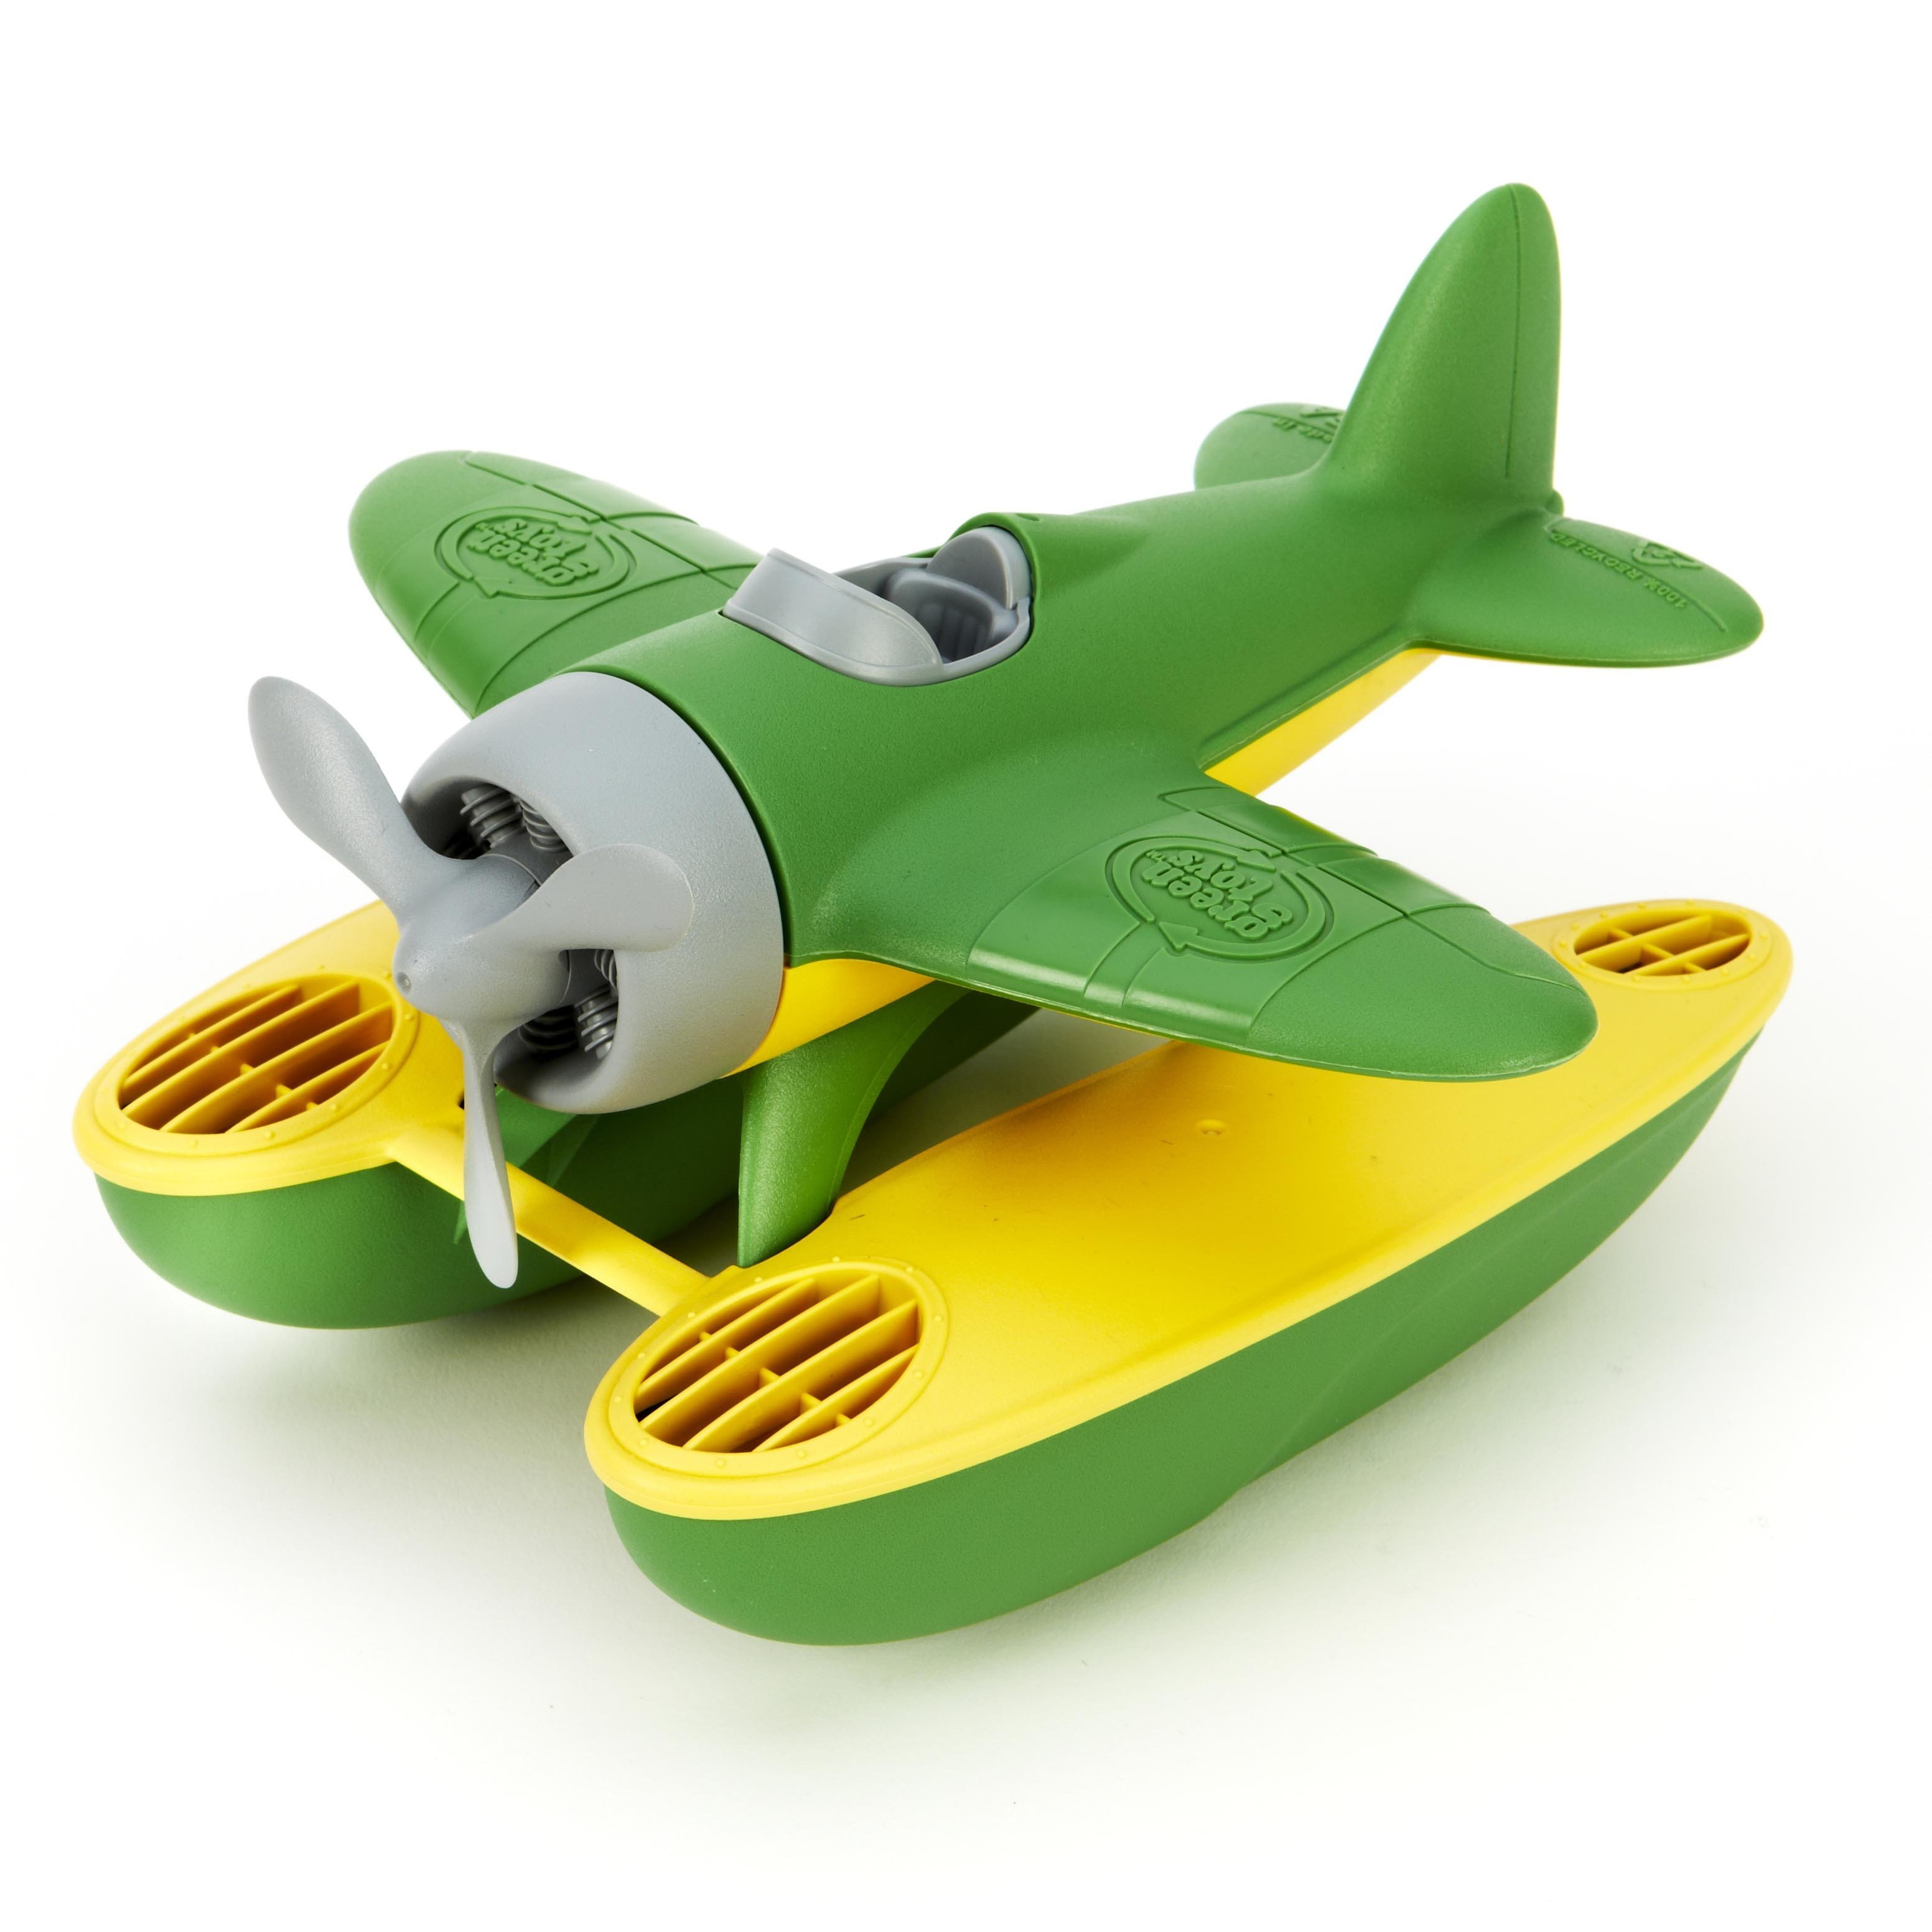 Seaplane (made from 100% recycled milk cartons) 00326